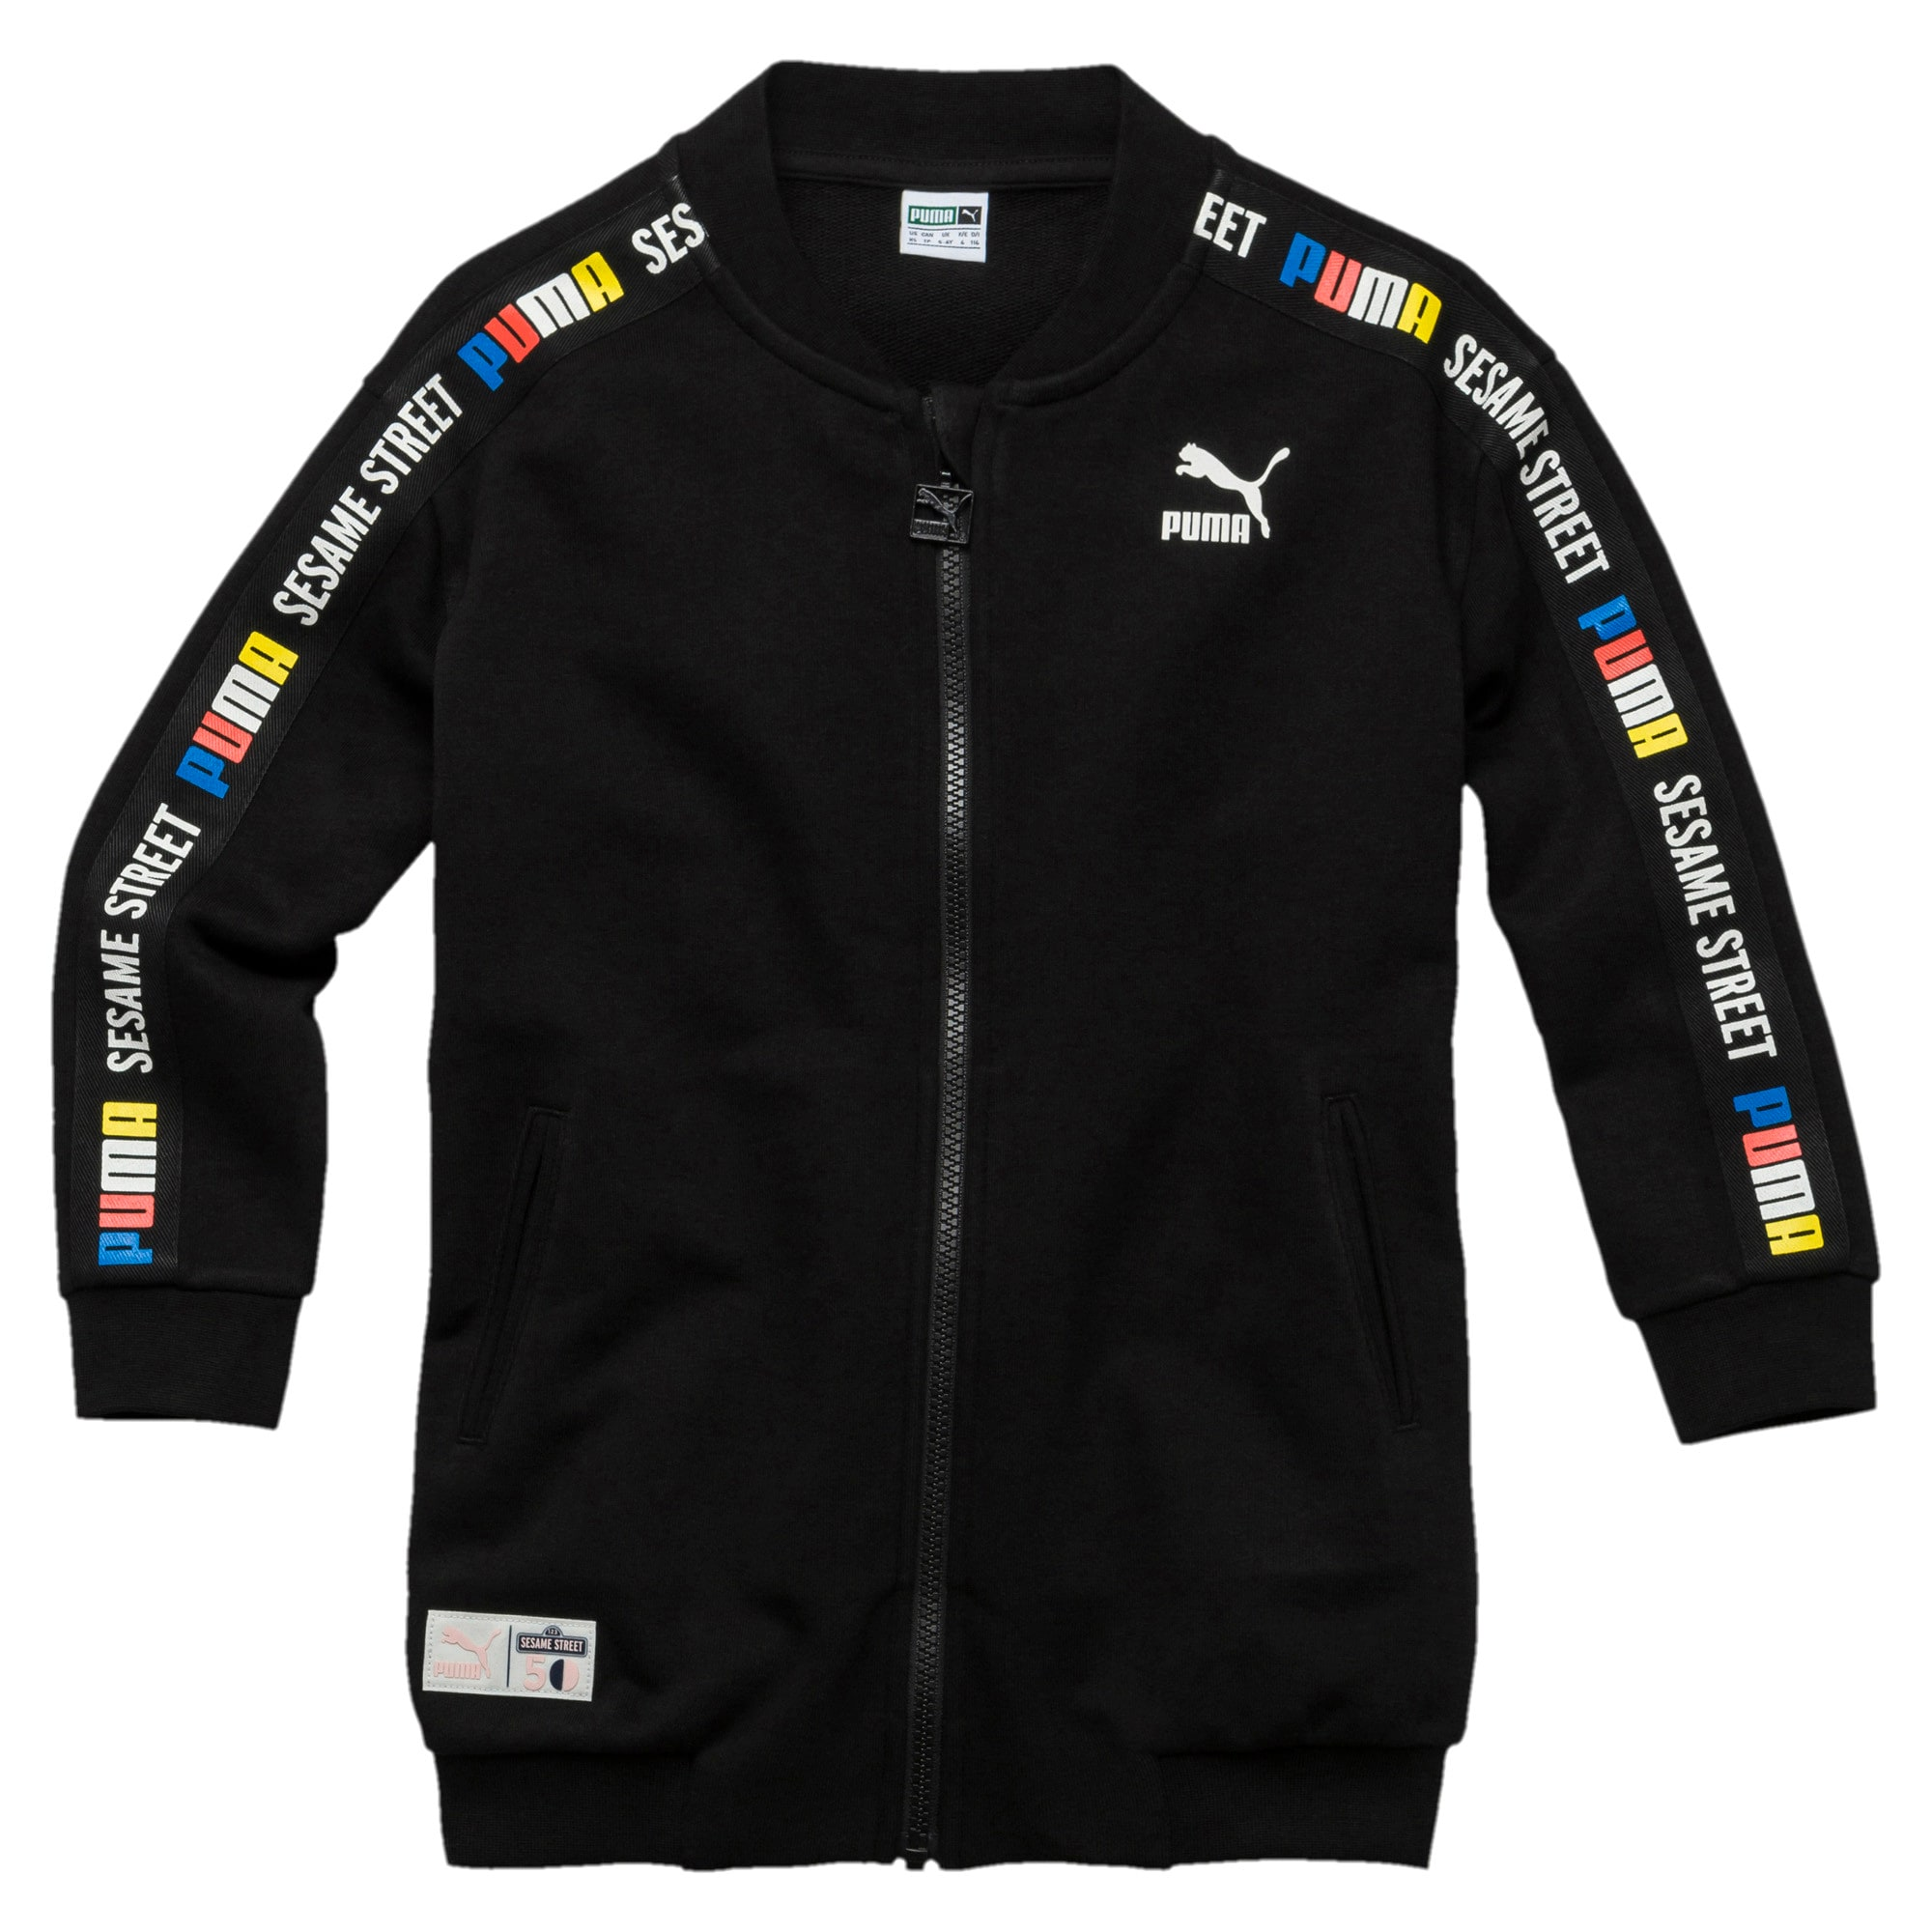 Thumbnail 1 of PUMA x SESAME STREET Girl's Full Zip Jacket, Cotton Black, medium